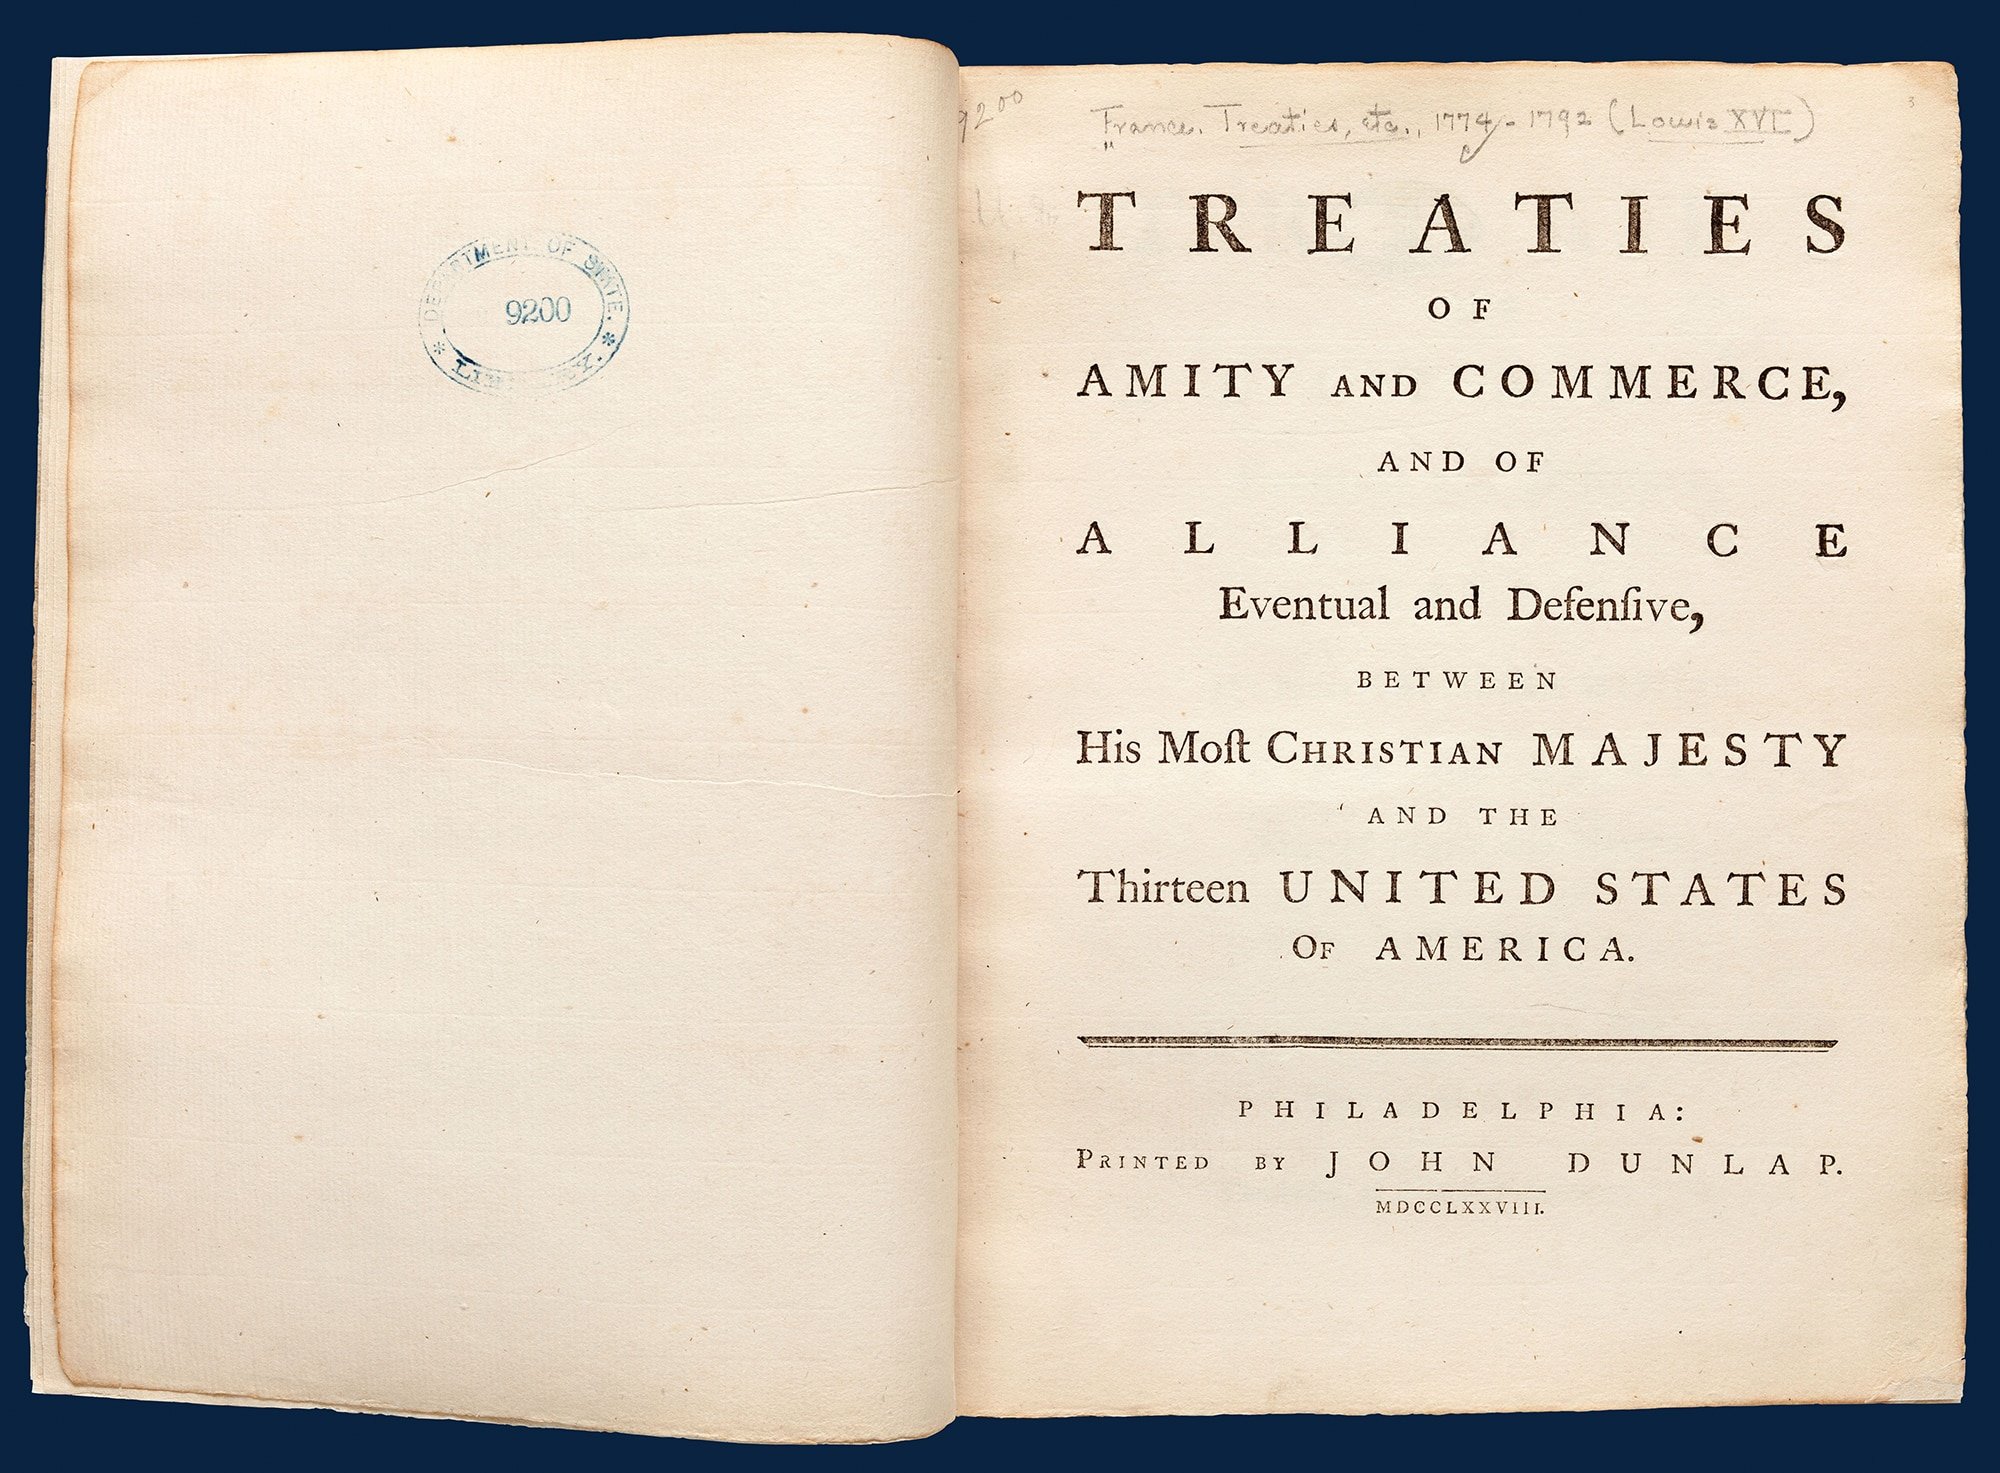 Photo showing a John Dunlap print of the Treaties of Amity and Commerce, and of Alliance with France. Signed in February 1778, these were the first two treaties the United States signed. [Department of State]